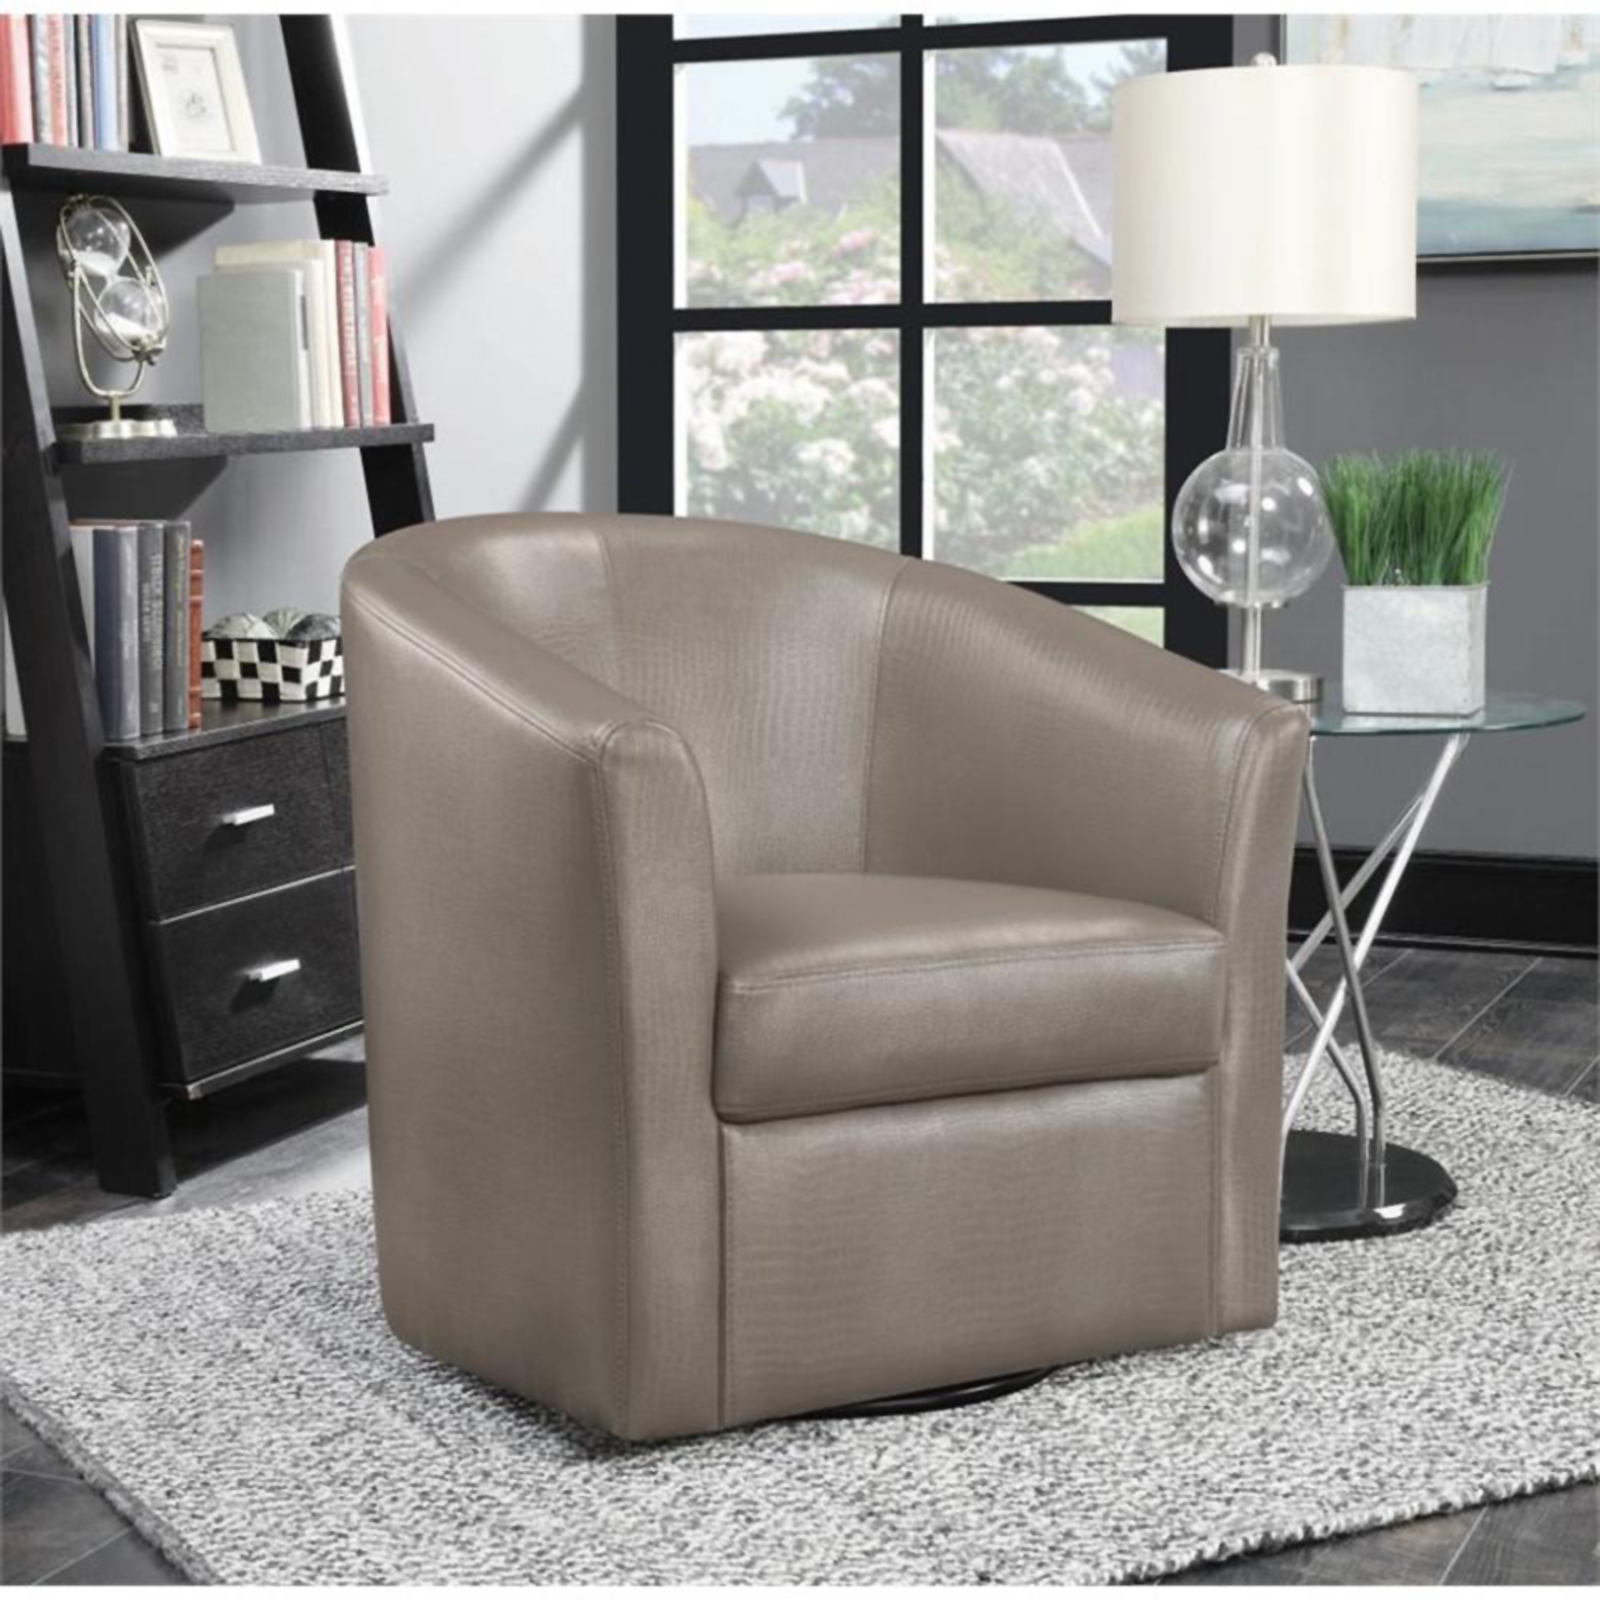 Coaster Faux Leather Upholstered Accent Chair  Sears